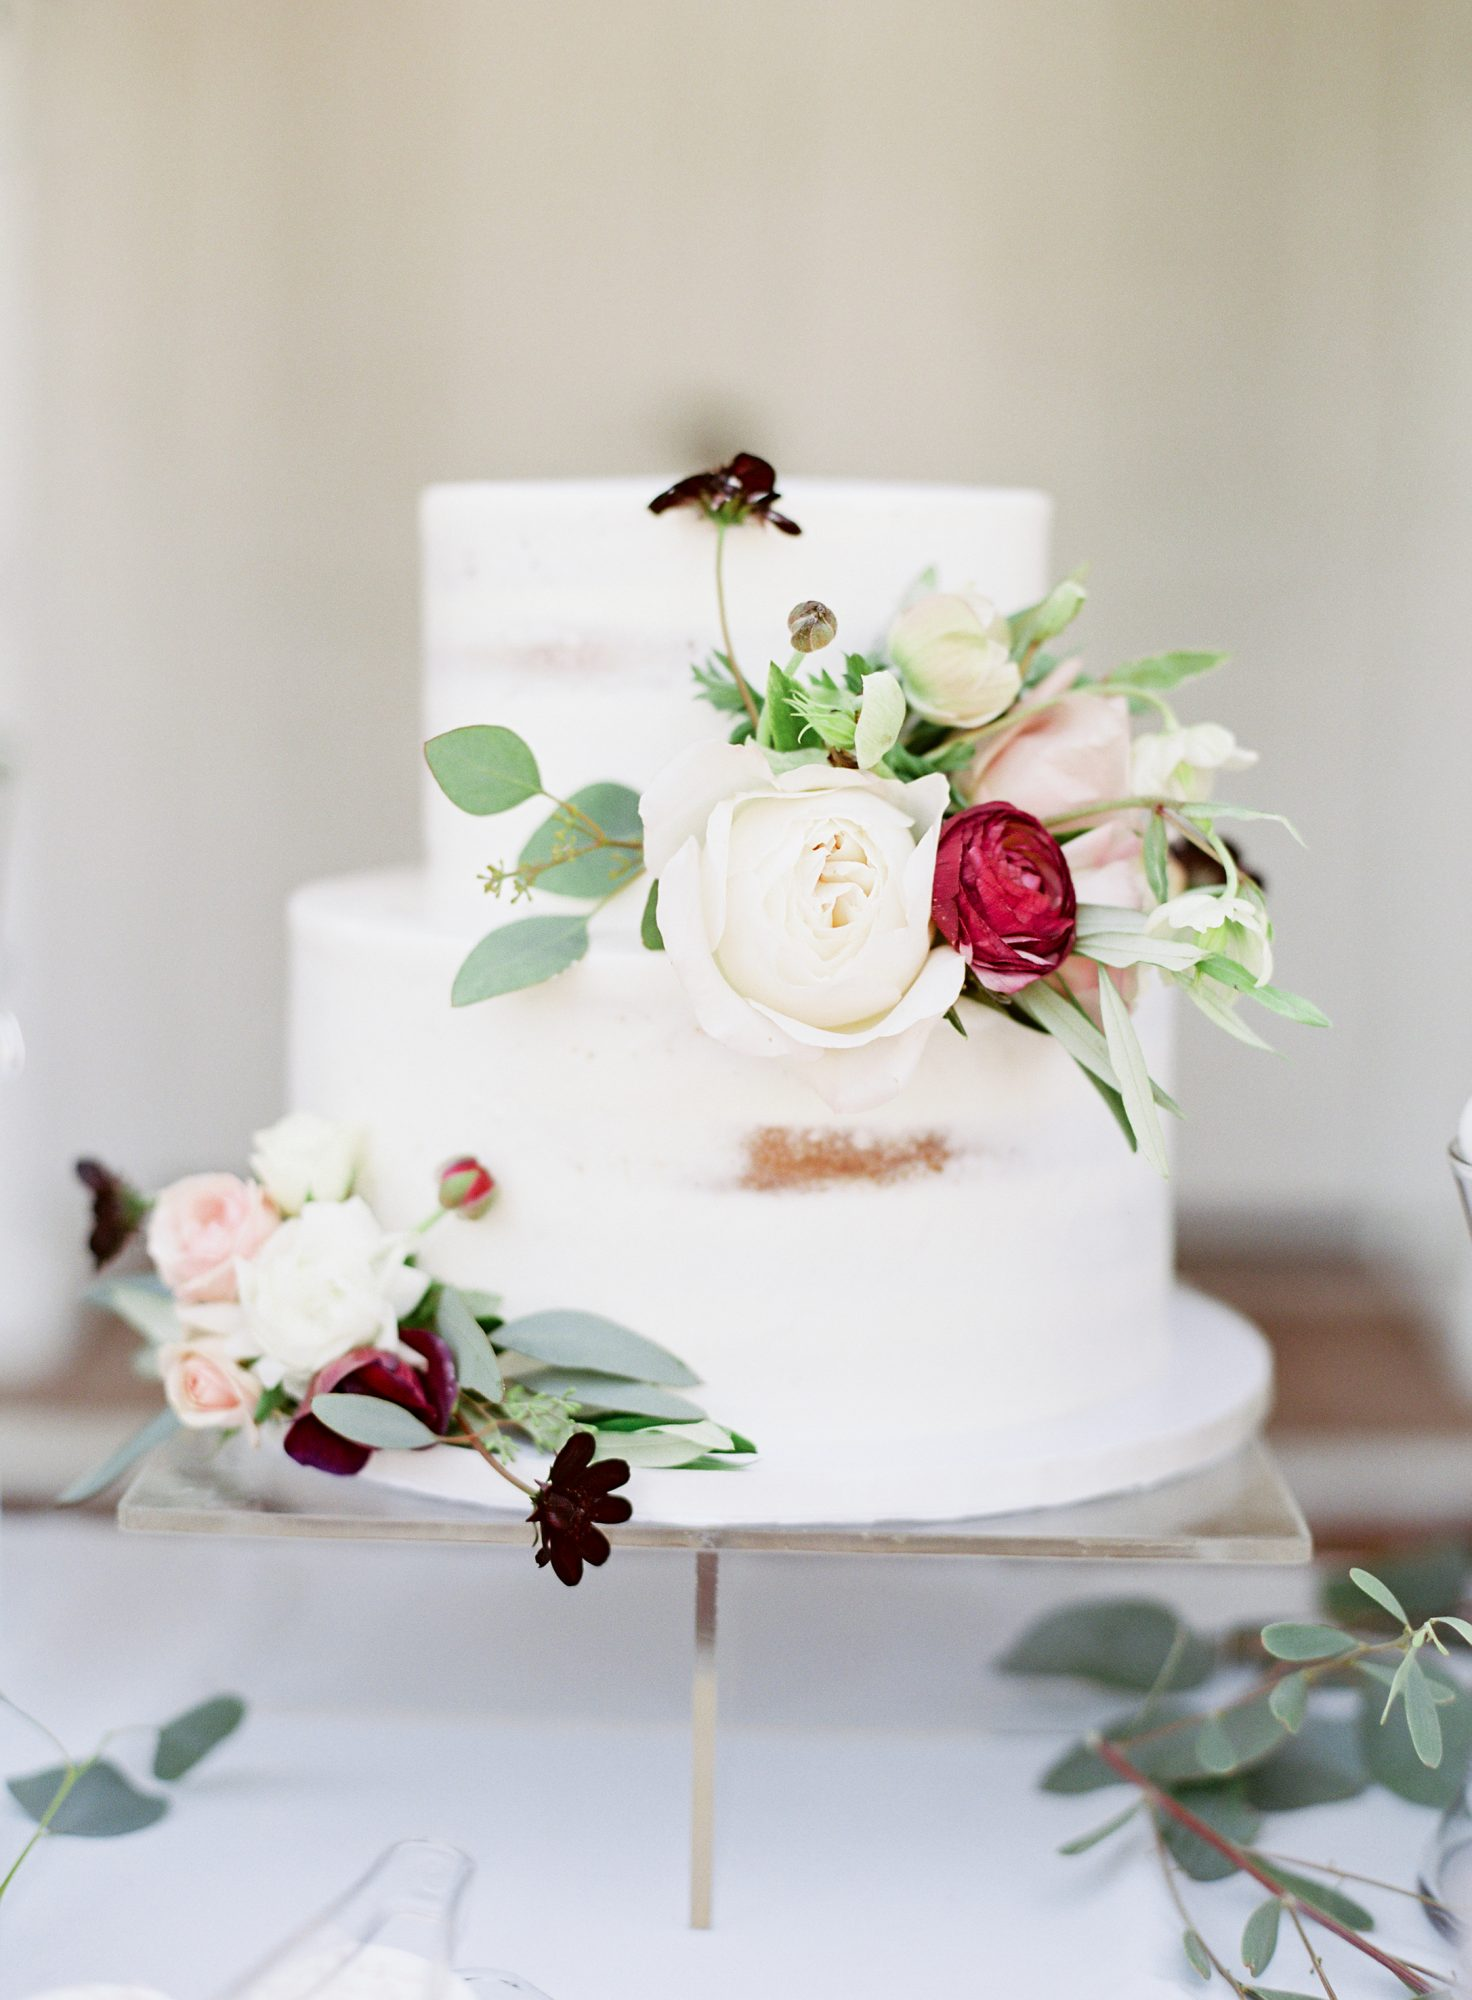 Little groupings of white, pink, red, and purple flowers decorated this sparsely-iced cake.